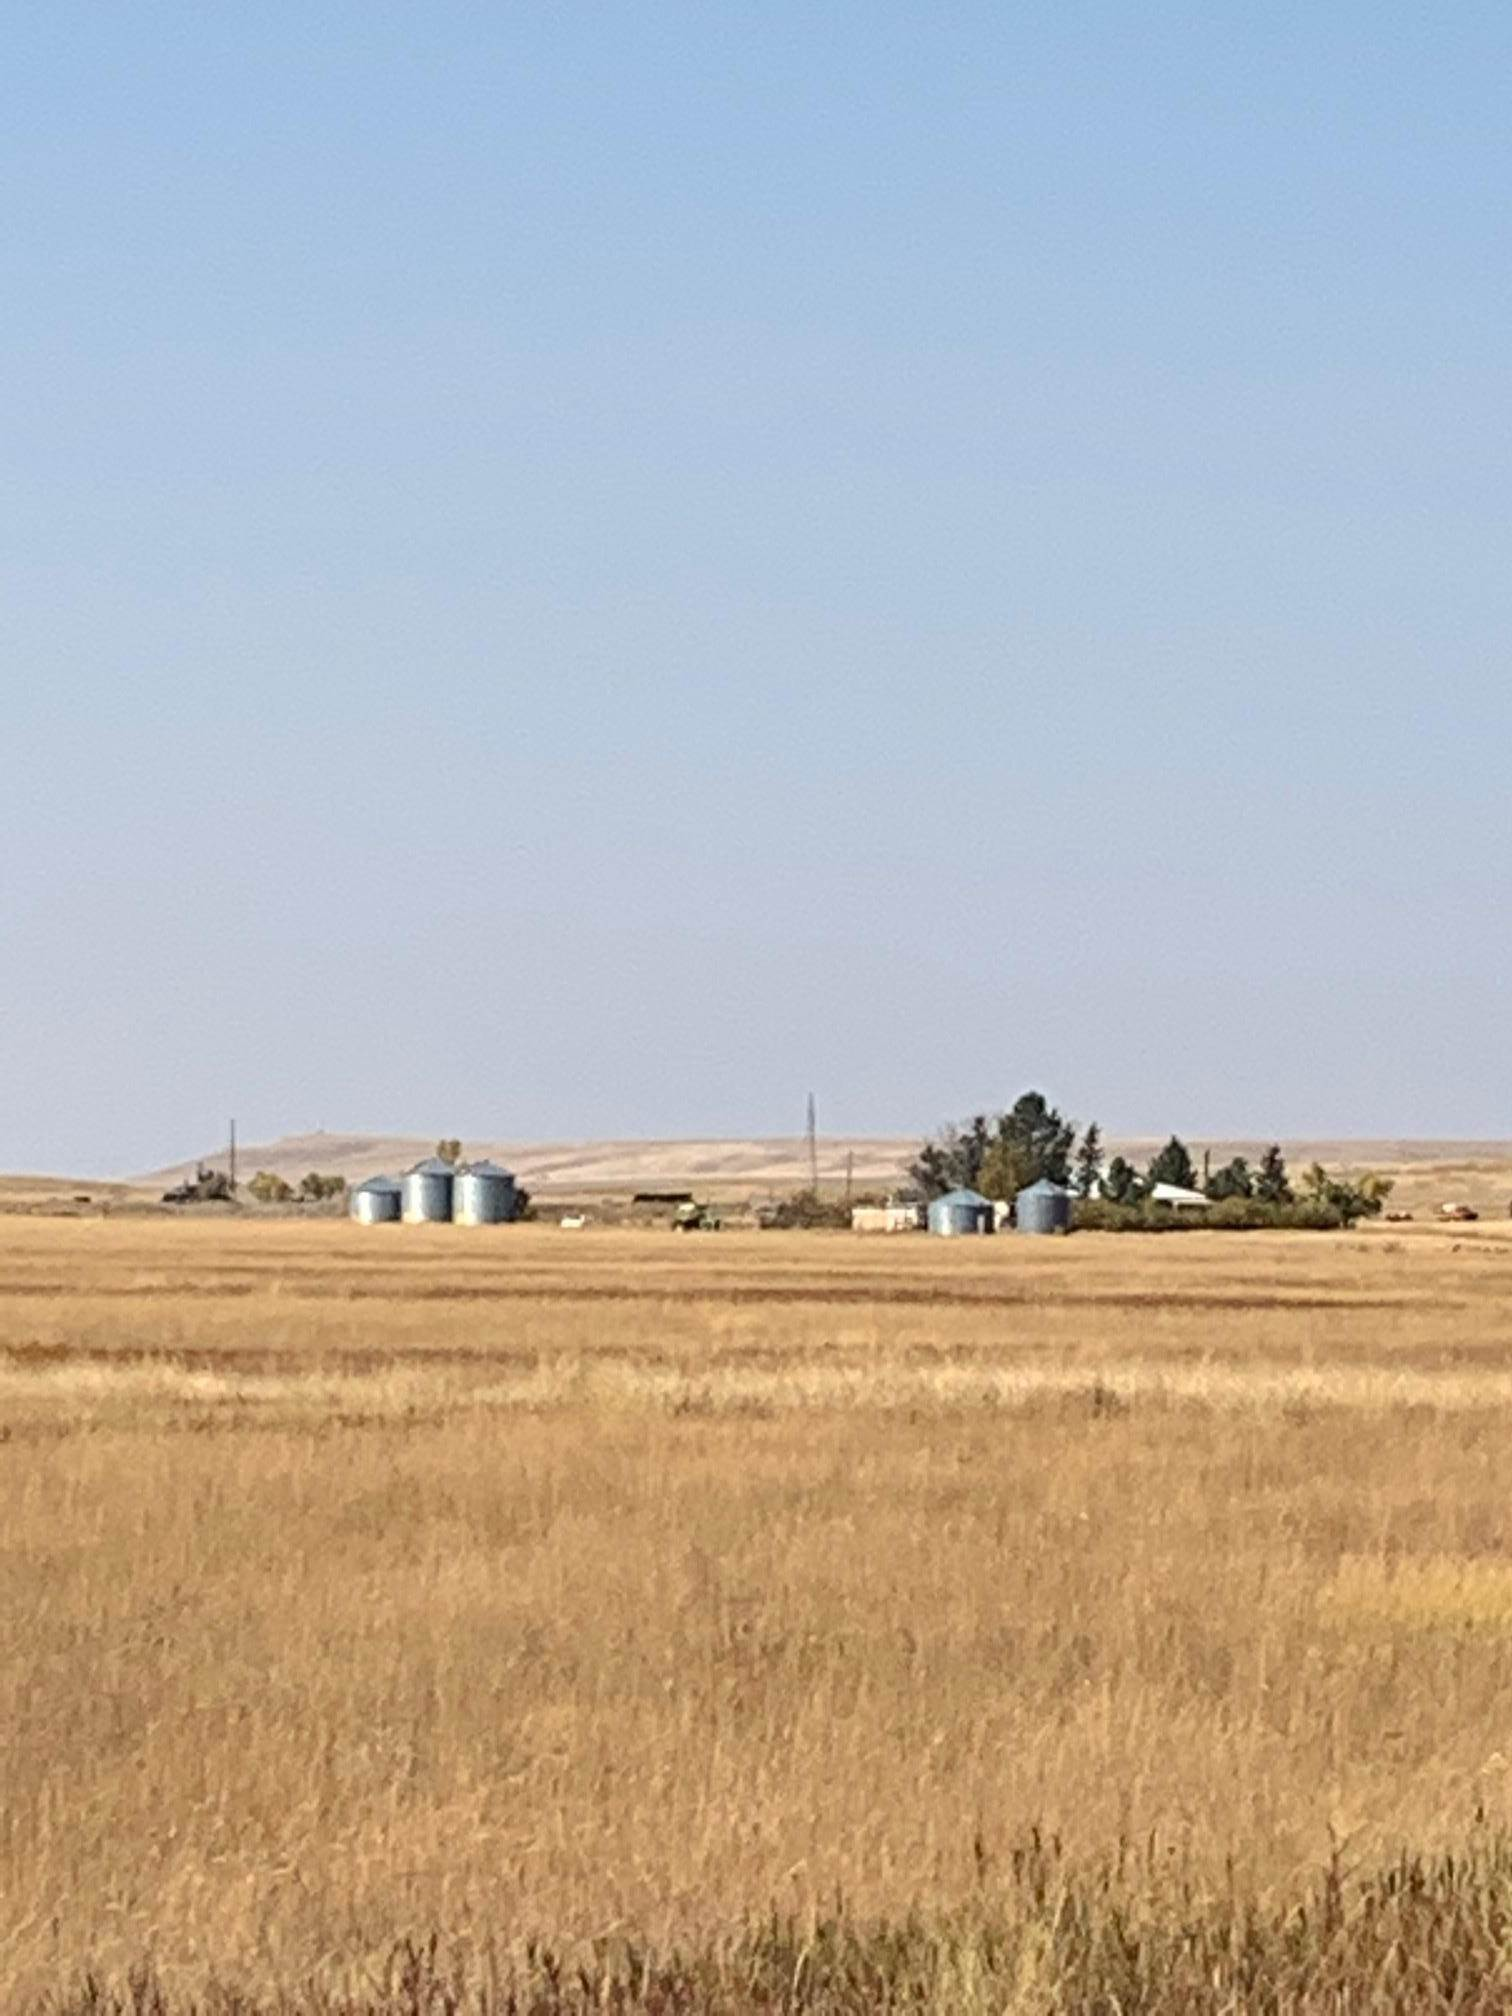 Farm / Agriculture for Sale at 982 24th Lane Power, Montana 59468 United States